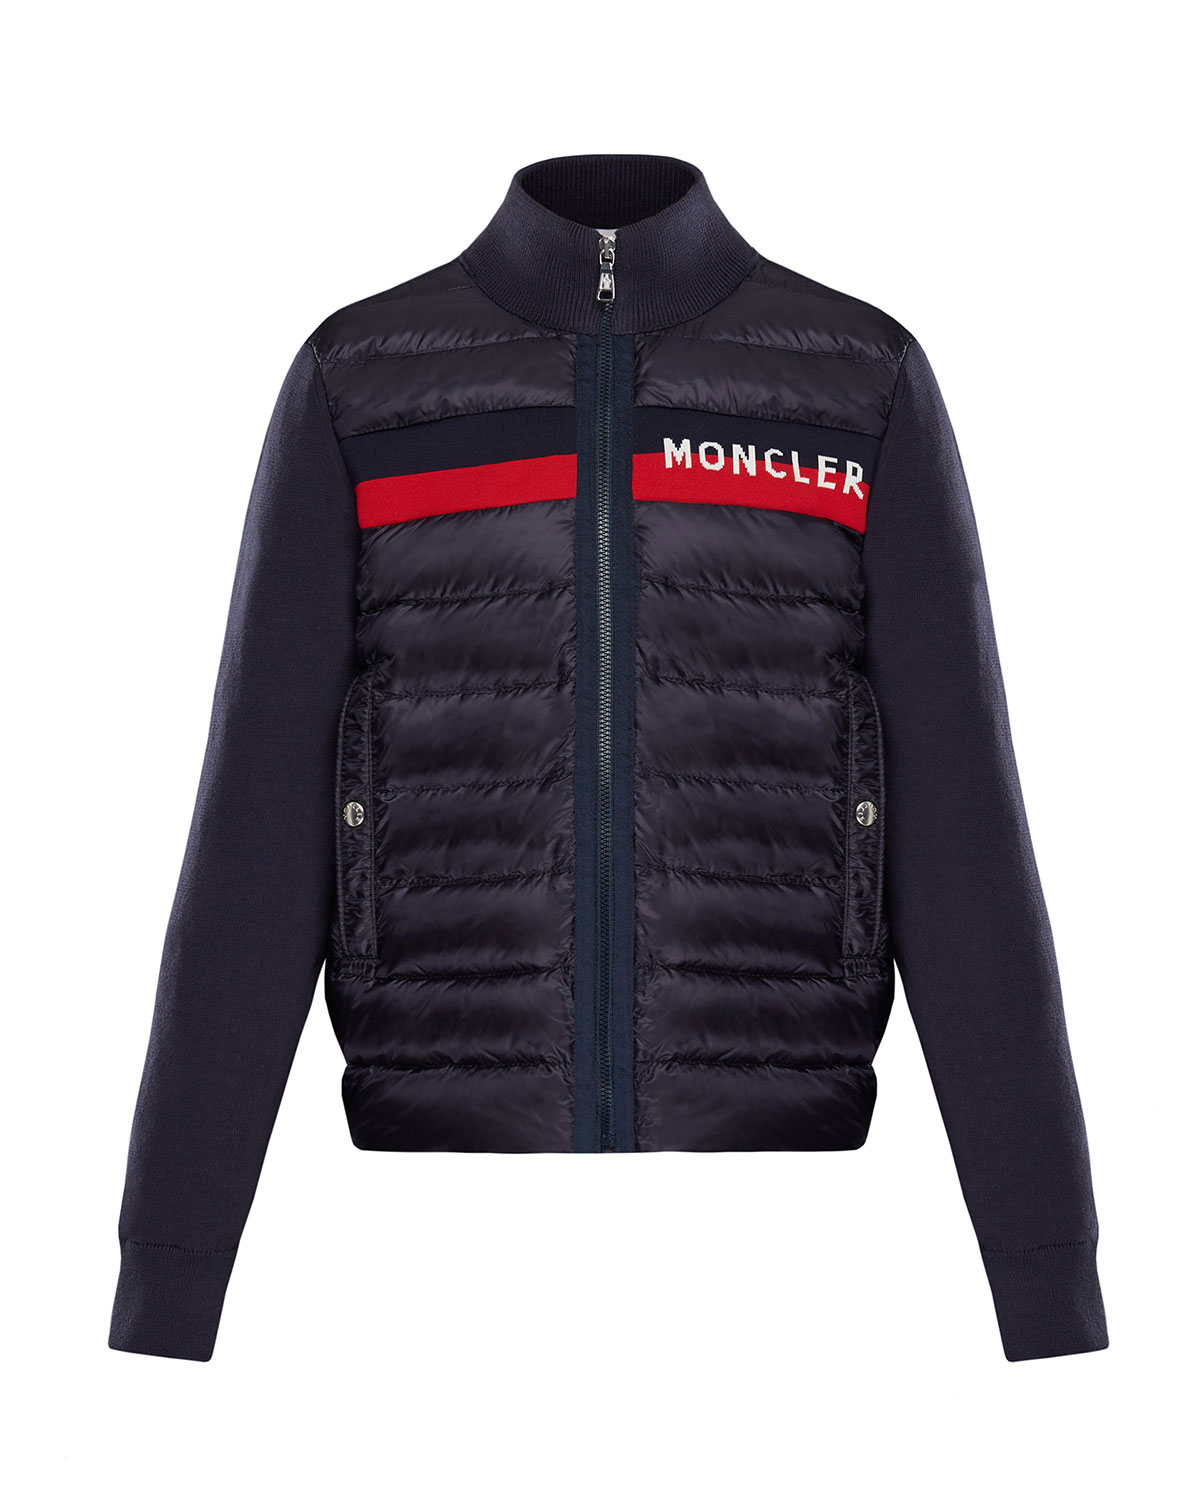 Moncler Unisex Contrast Knit Quilted Jacket - Big Kid In Navy